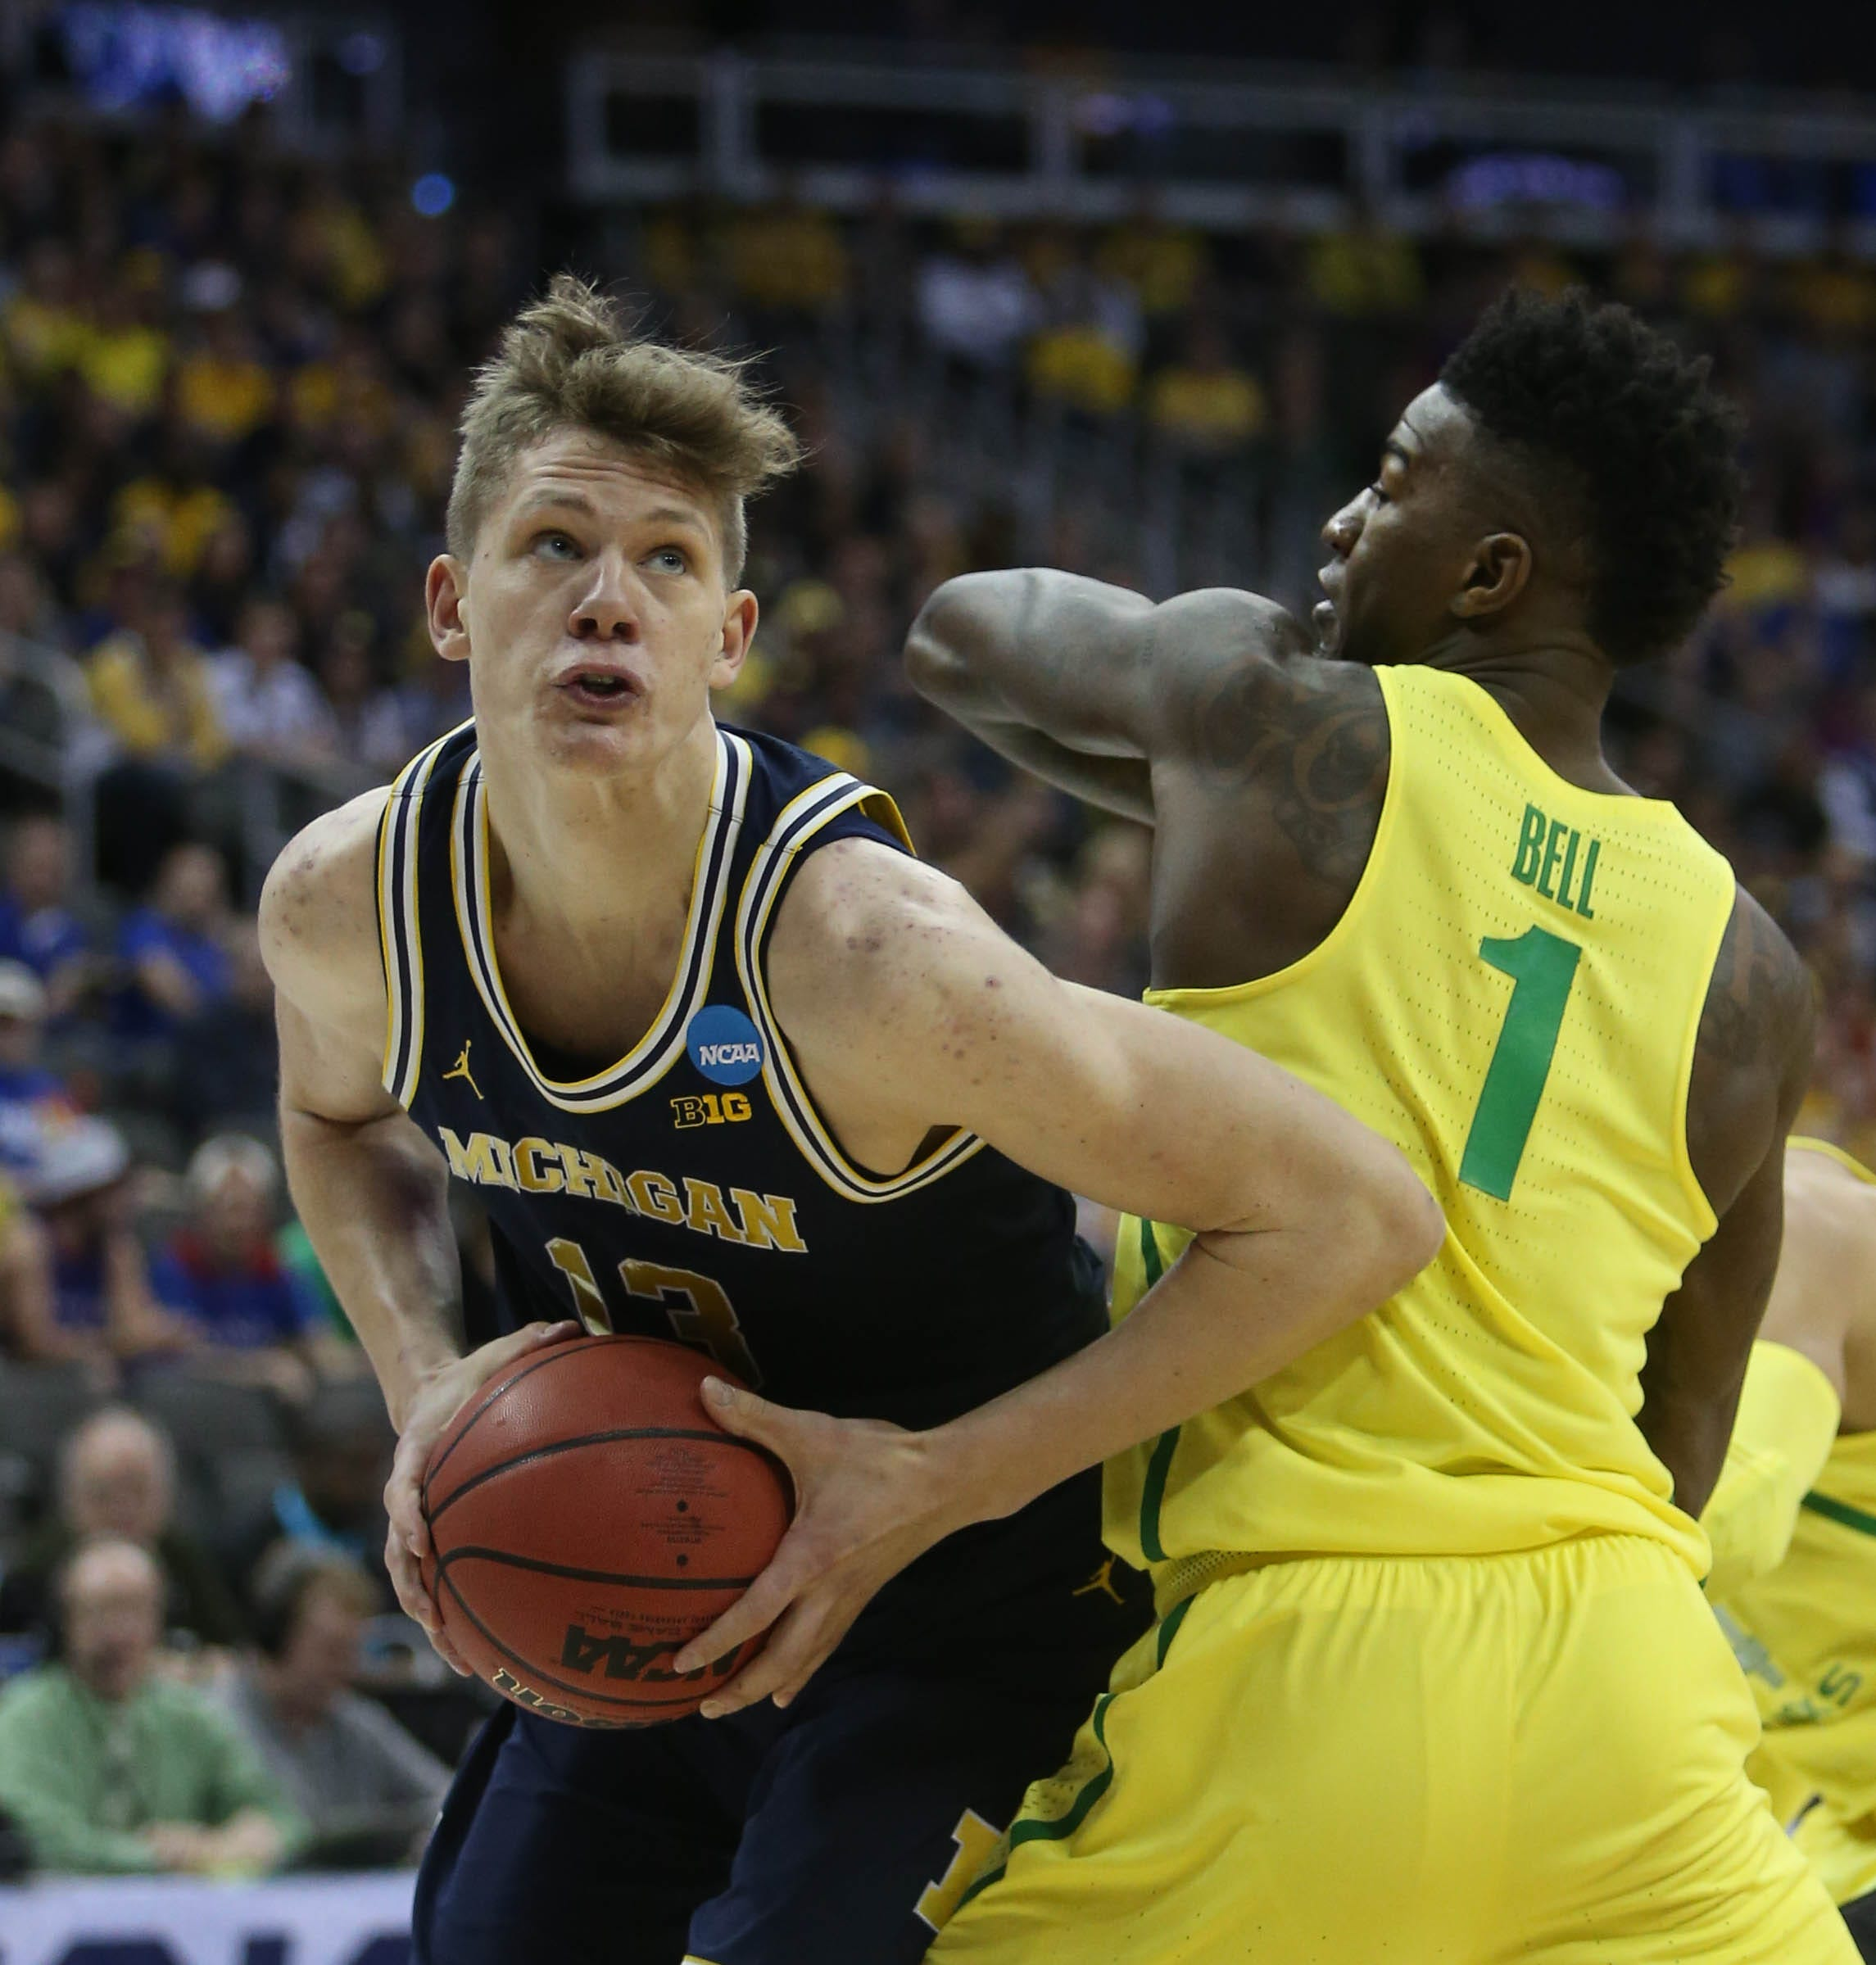 Michigan's small miscues mount, hurt just enough to end the magic